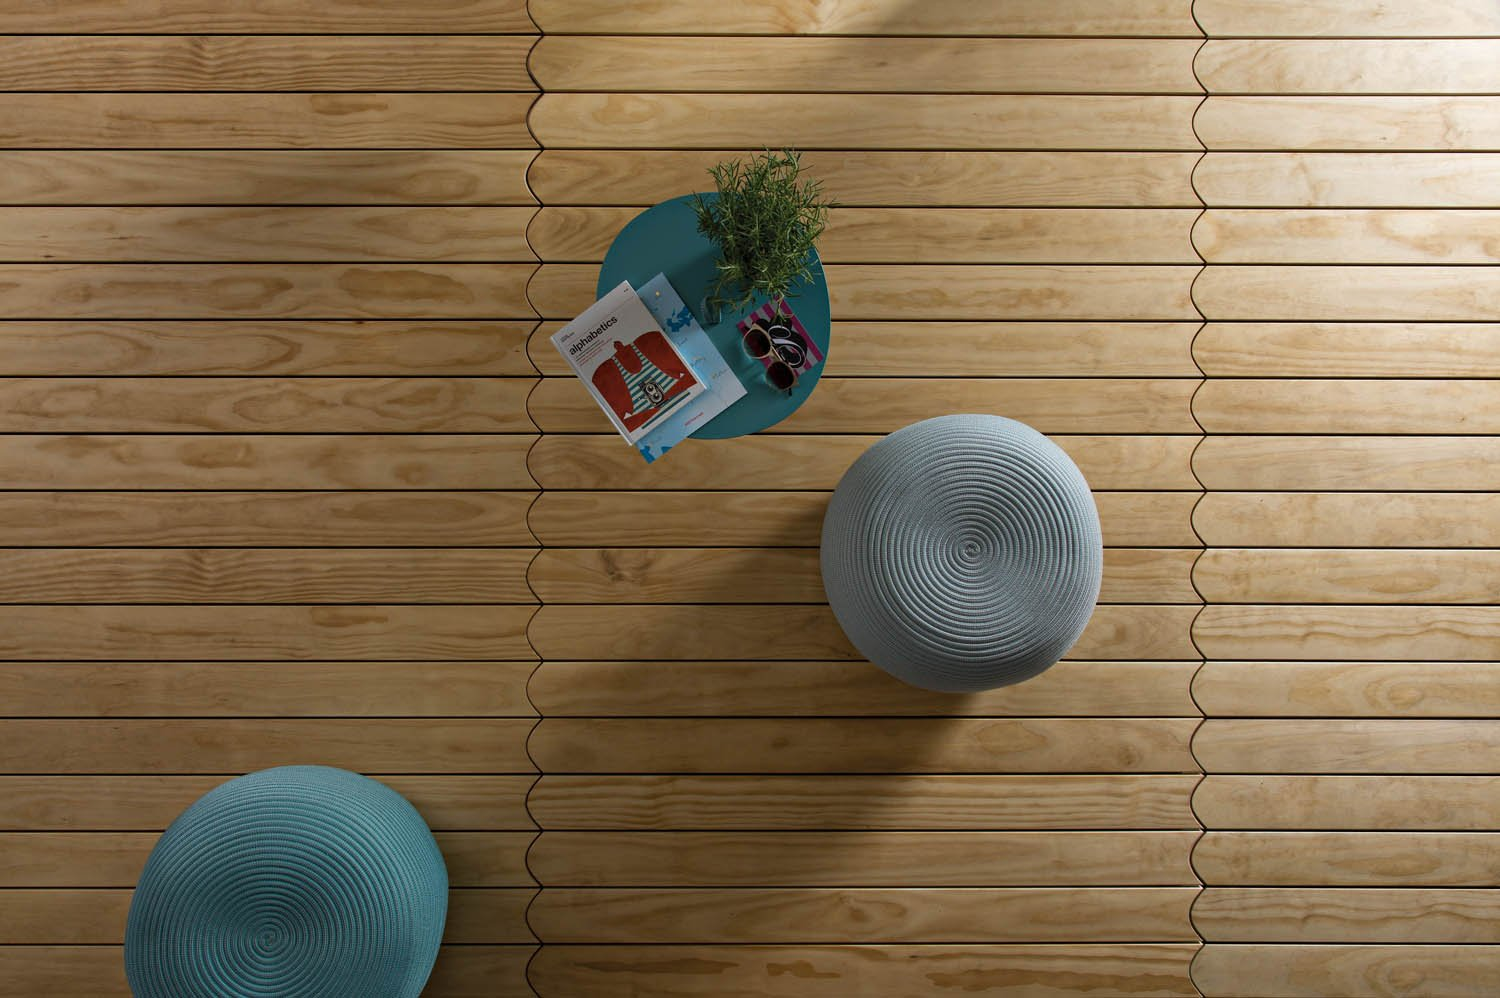 Courtesy of Listone Giordano Decking Biscuit, design by Patricia Urquiola, parquet in Accoya® or Ipe